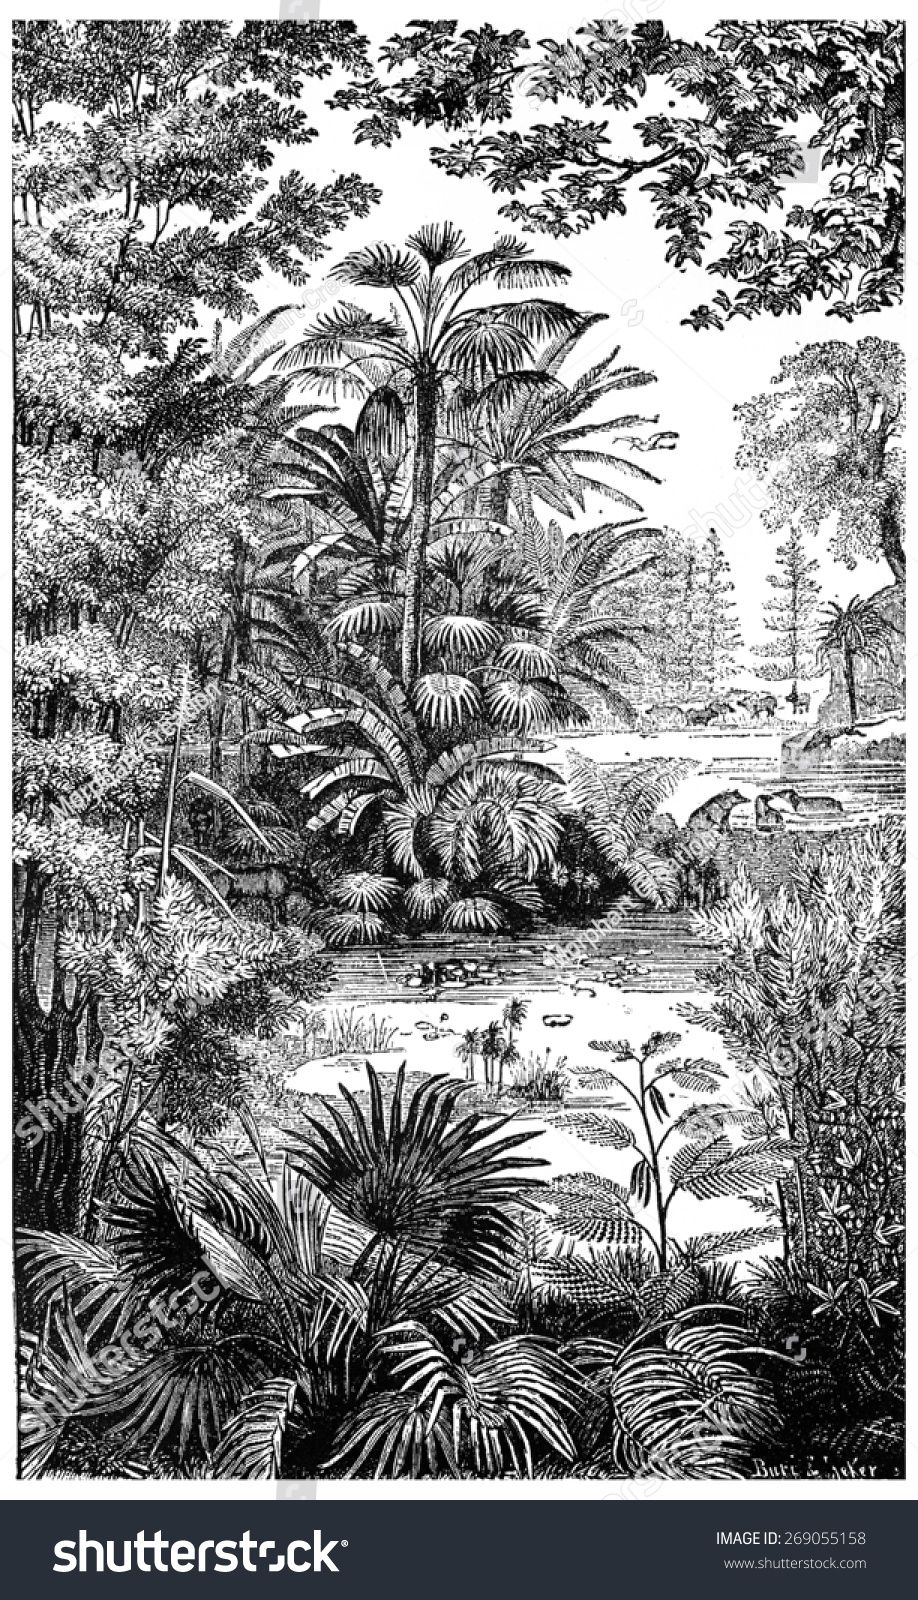 Landscape of the Miocene period in Lausanne, vintage engraved illustration. Earth before man ...